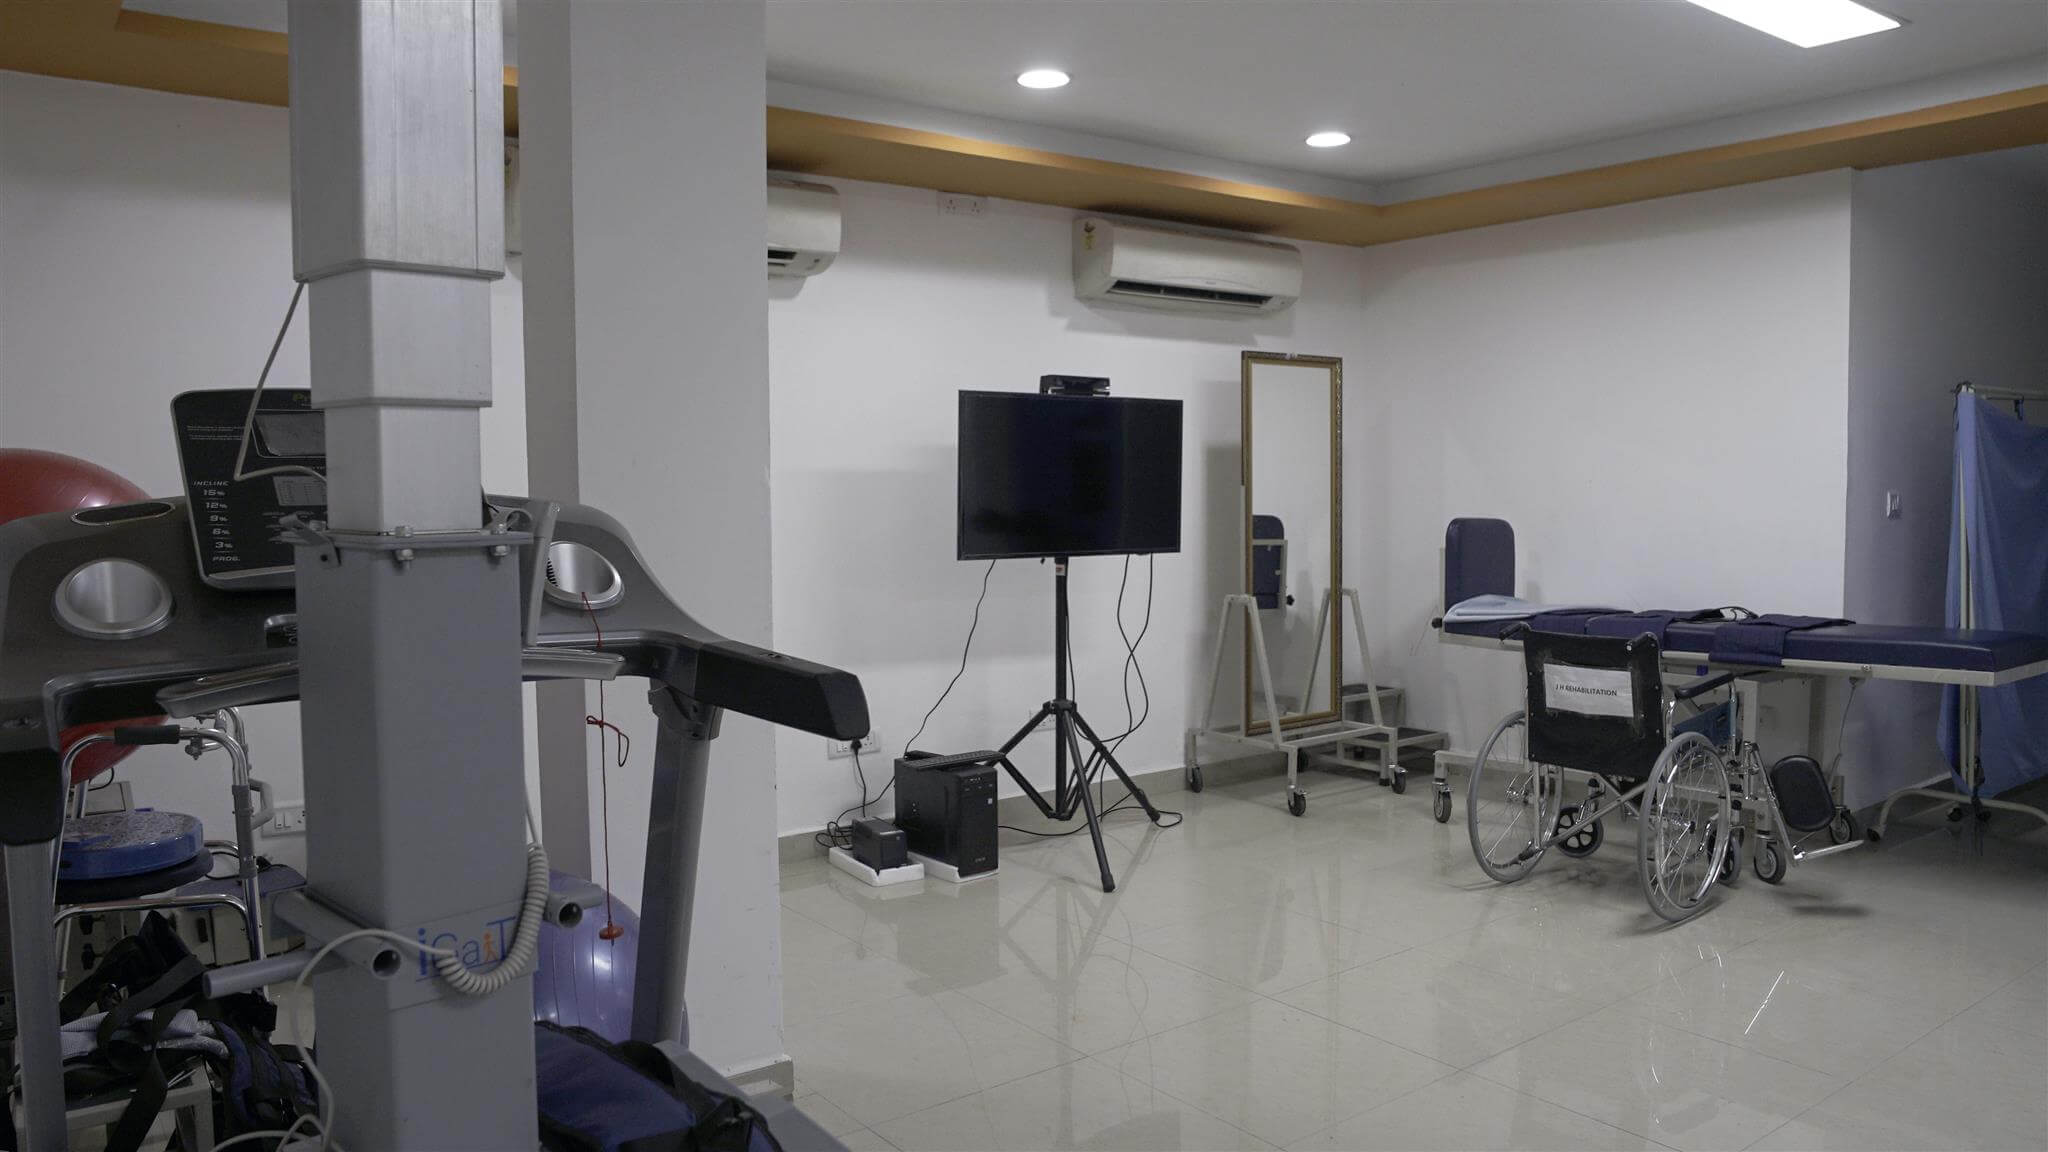 Physiotherapy Monitoring